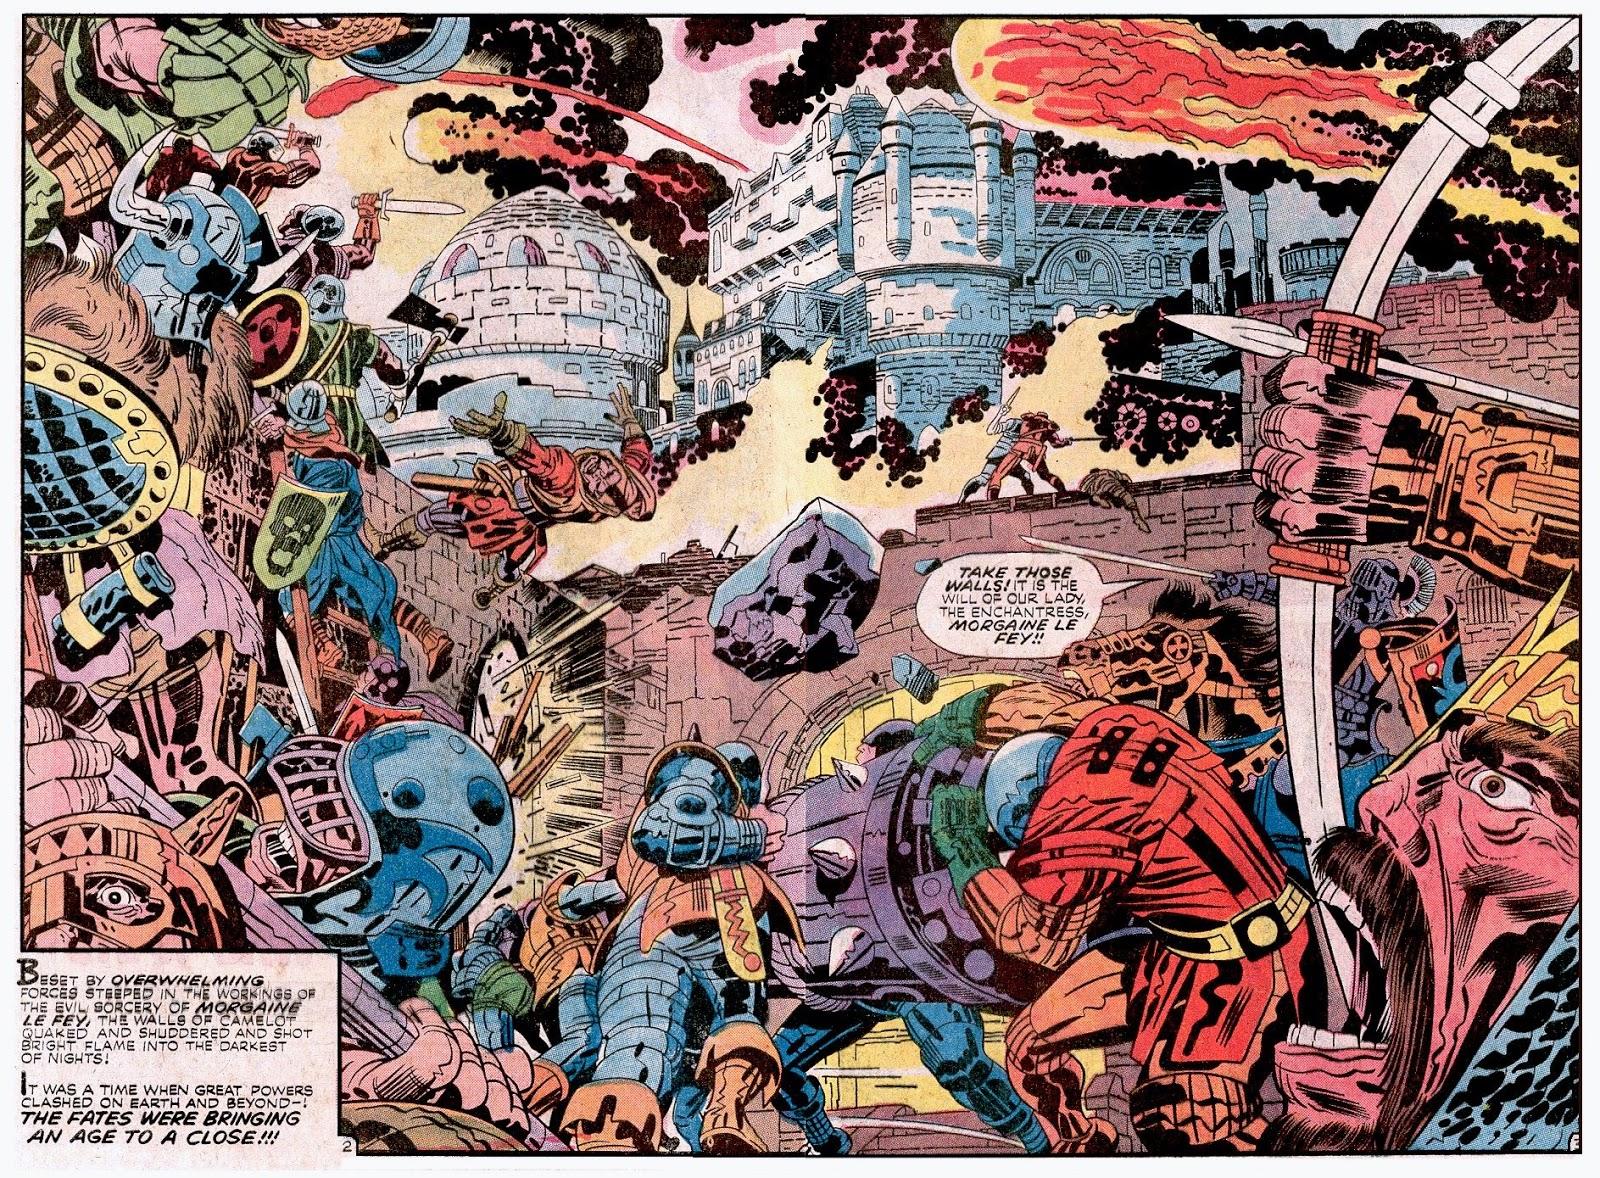 Jack Kirby's Demon review